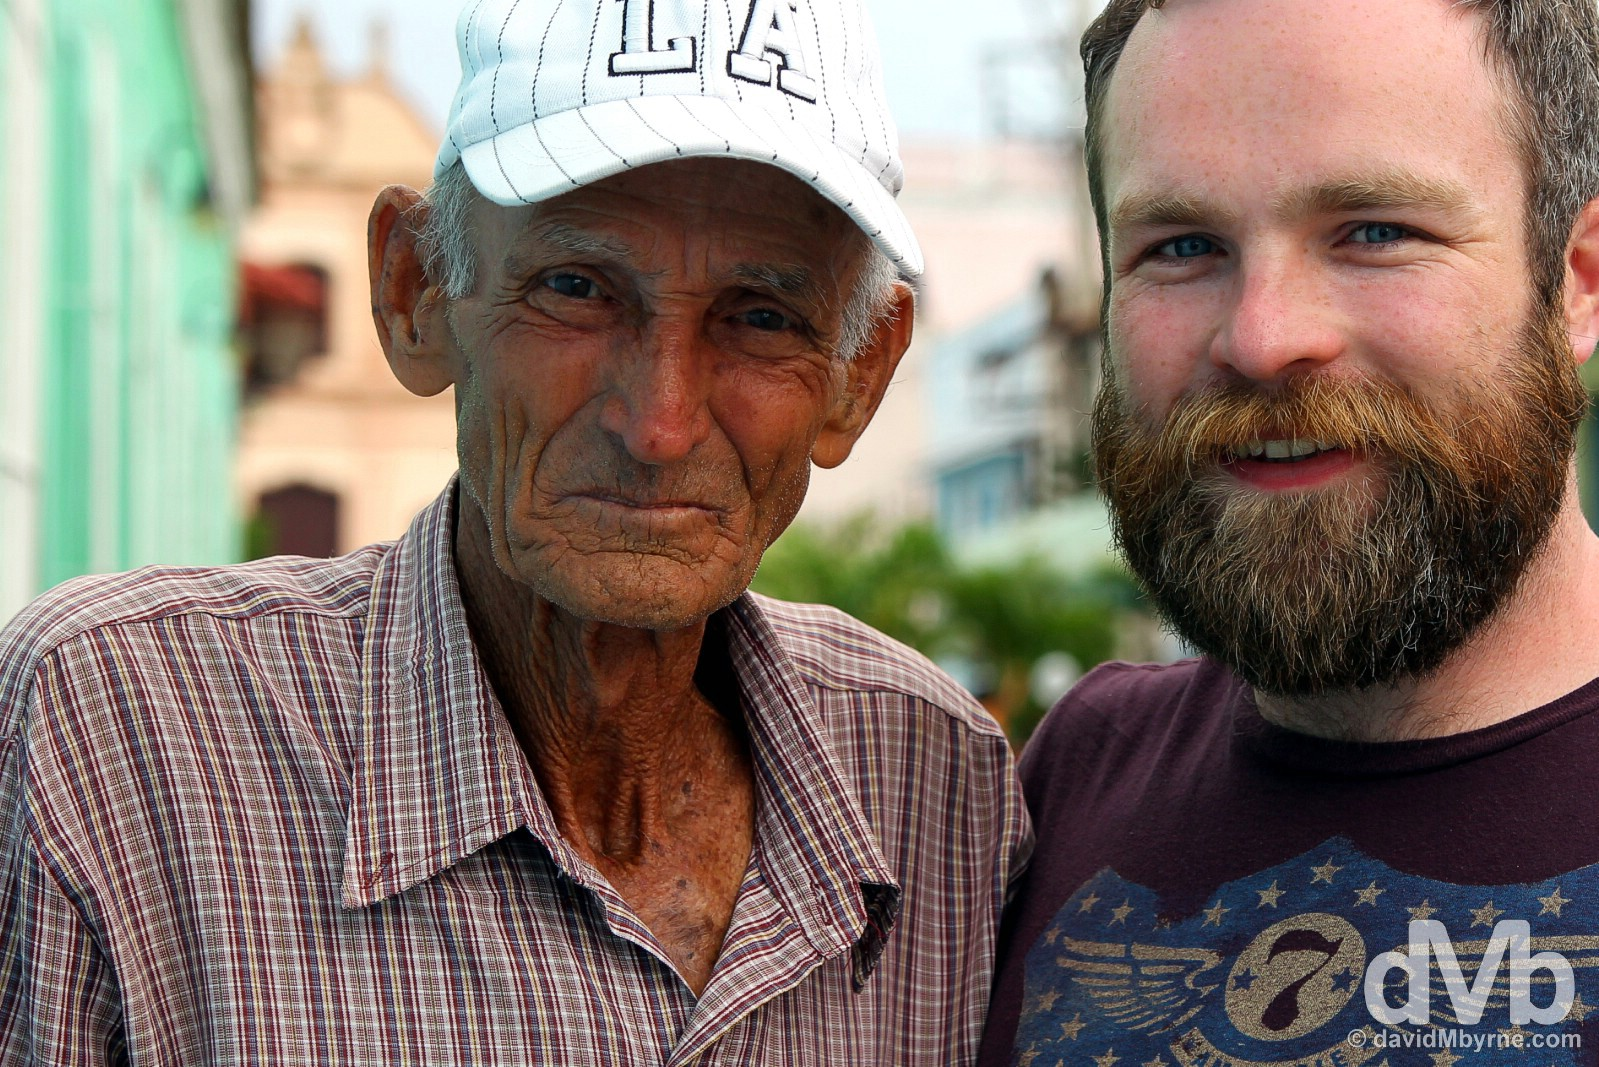 Liam with The Old Man. Plaza del Carmen, Camagüey, Cuba. May 4, 2015.